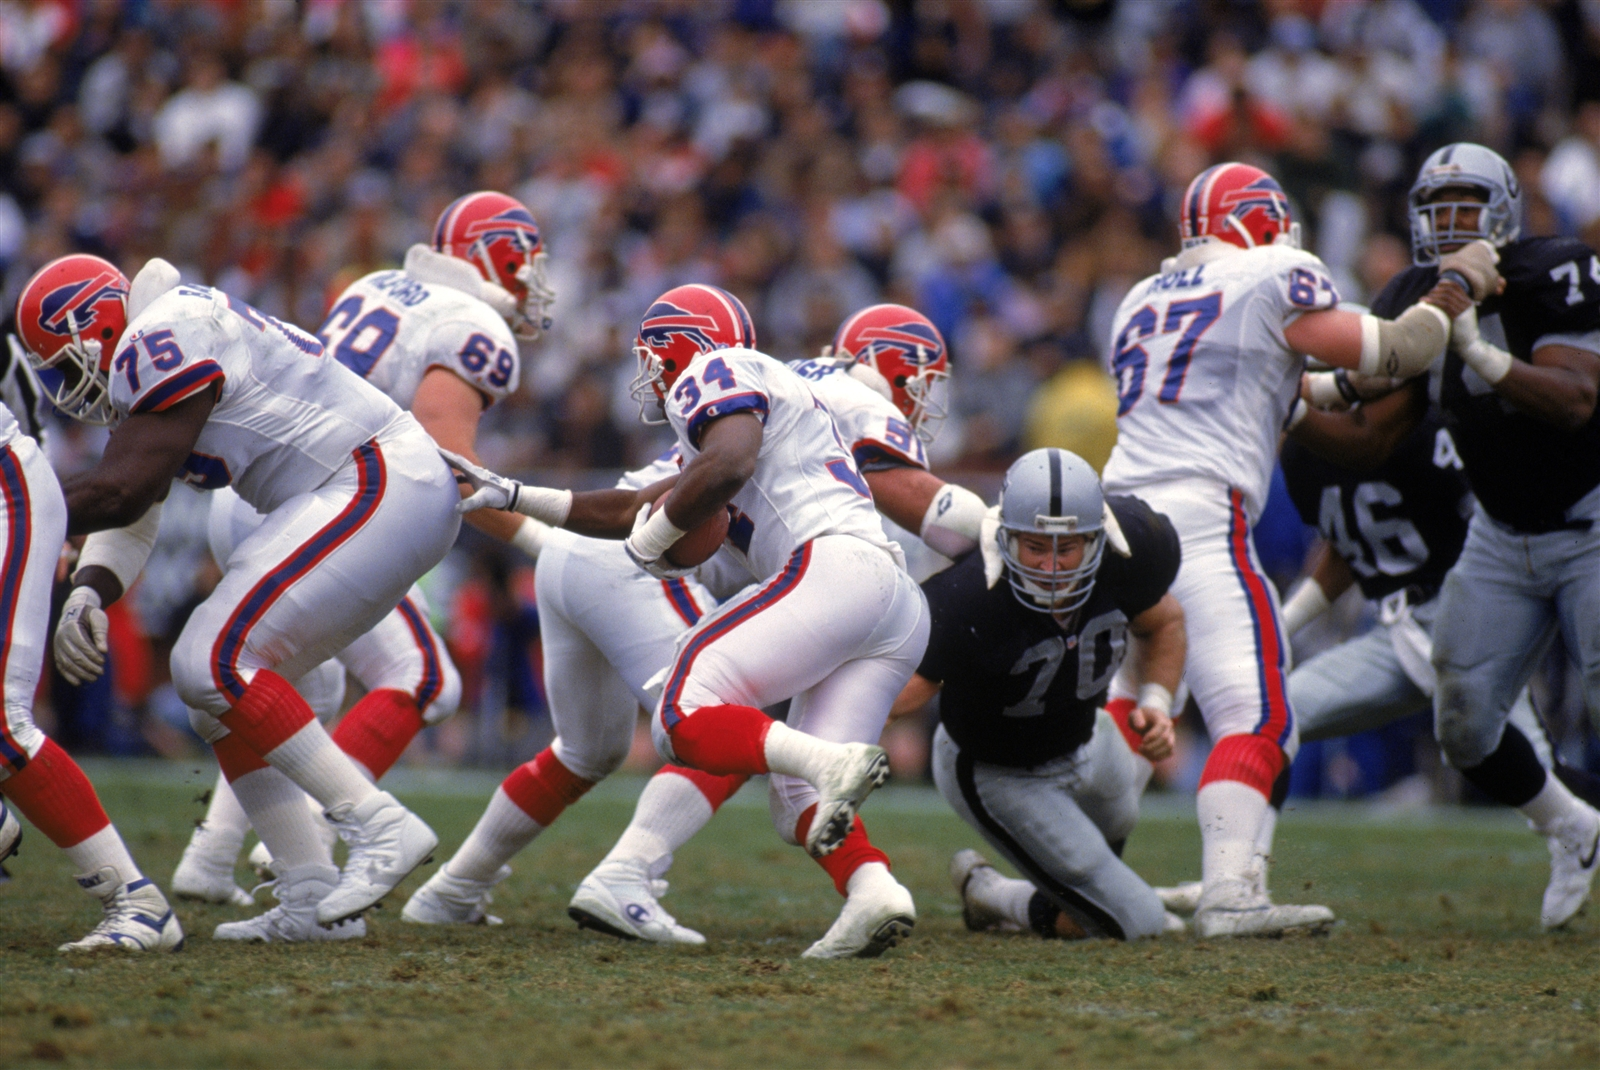 True, the Bills did beat the Raiders in 1991 (pictured), but that game was in Los Angeles. The team has lost its last eight times in games played in Oakland. If the Bills can end that streak Sunday against a Raiders team that is tied for the best record in the AFC at 9-2, it would be their most impressive win in recent memory. Here is how the Bills and Raiders match up: